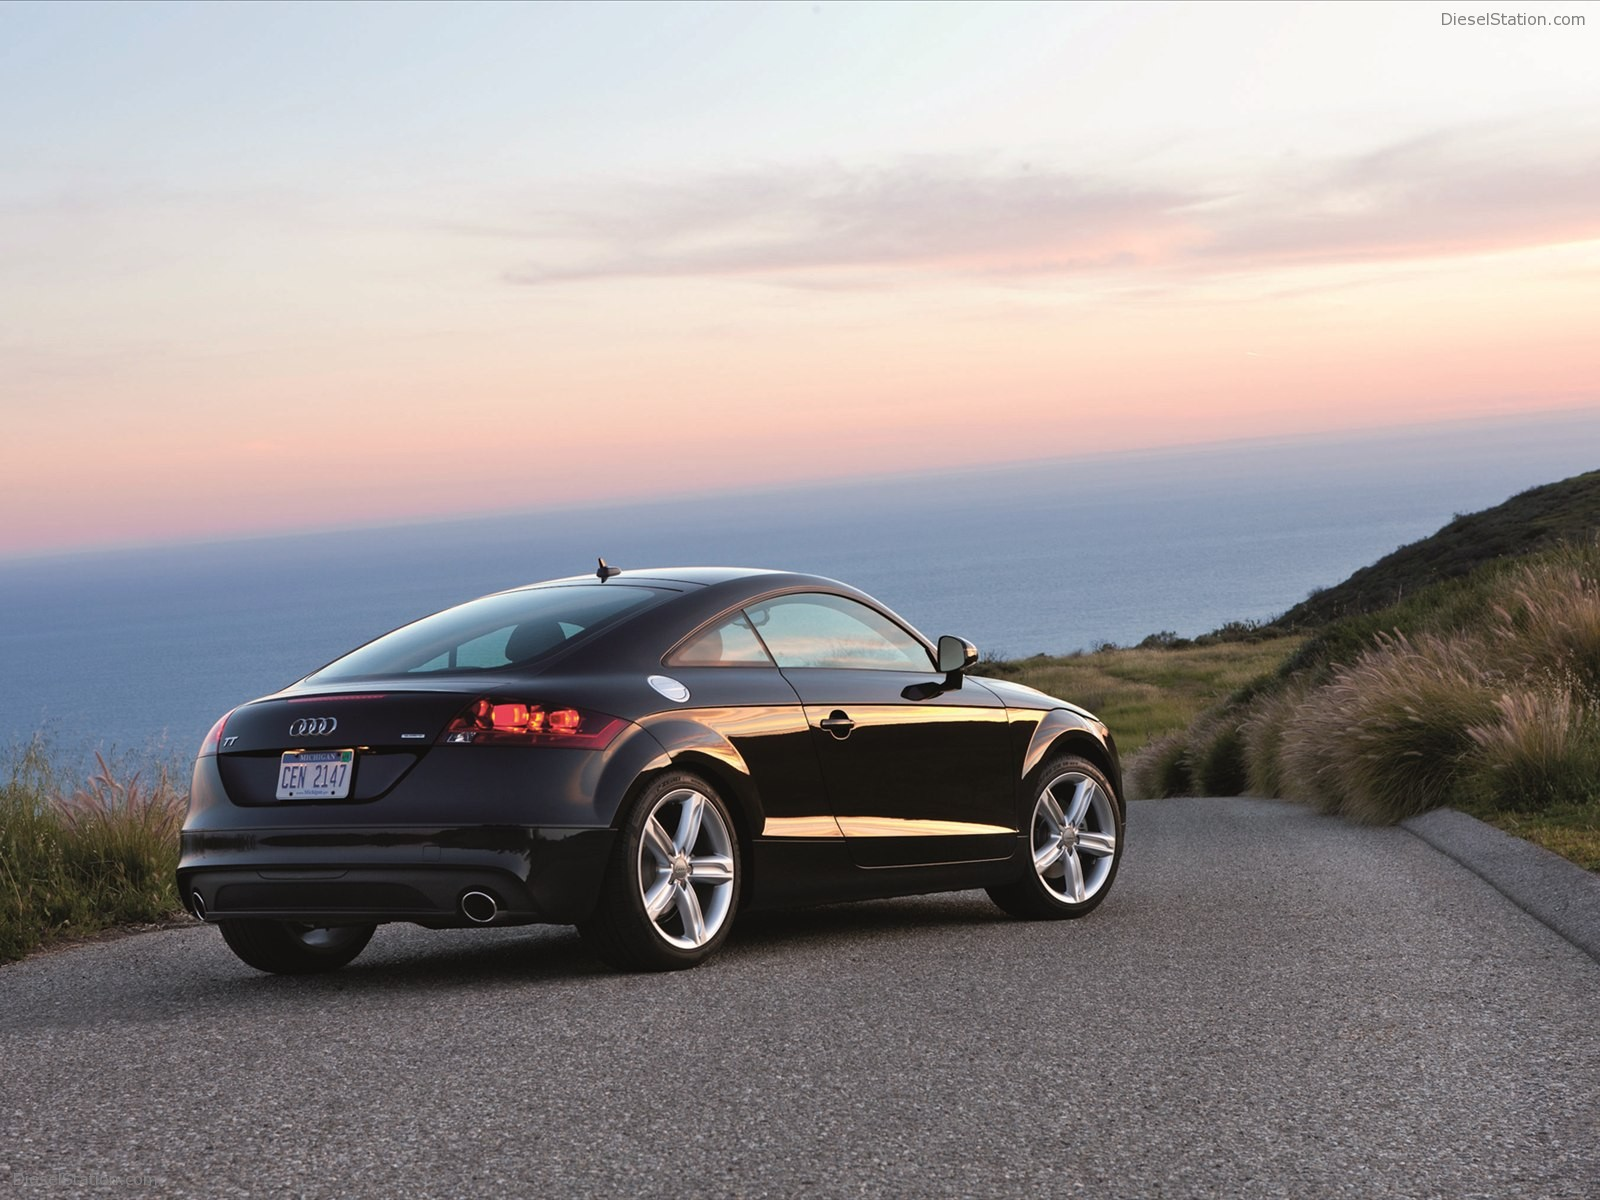 audi tt 2012 review amazing pictures and images look at the car. Black Bedroom Furniture Sets. Home Design Ideas